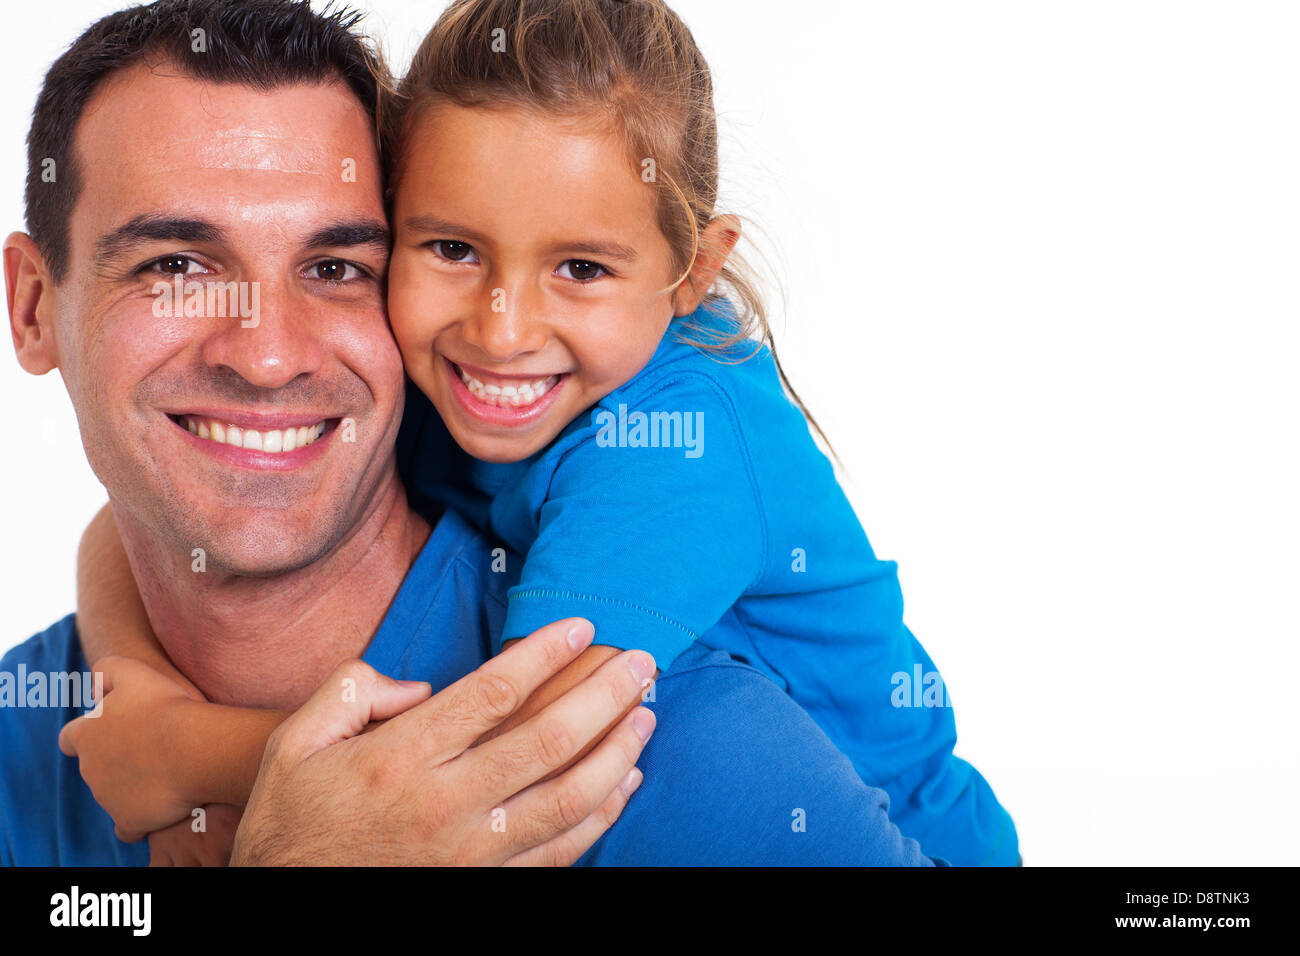 De joyeux piggyback ride à sa fille sur un fond blanc. Photo Stock